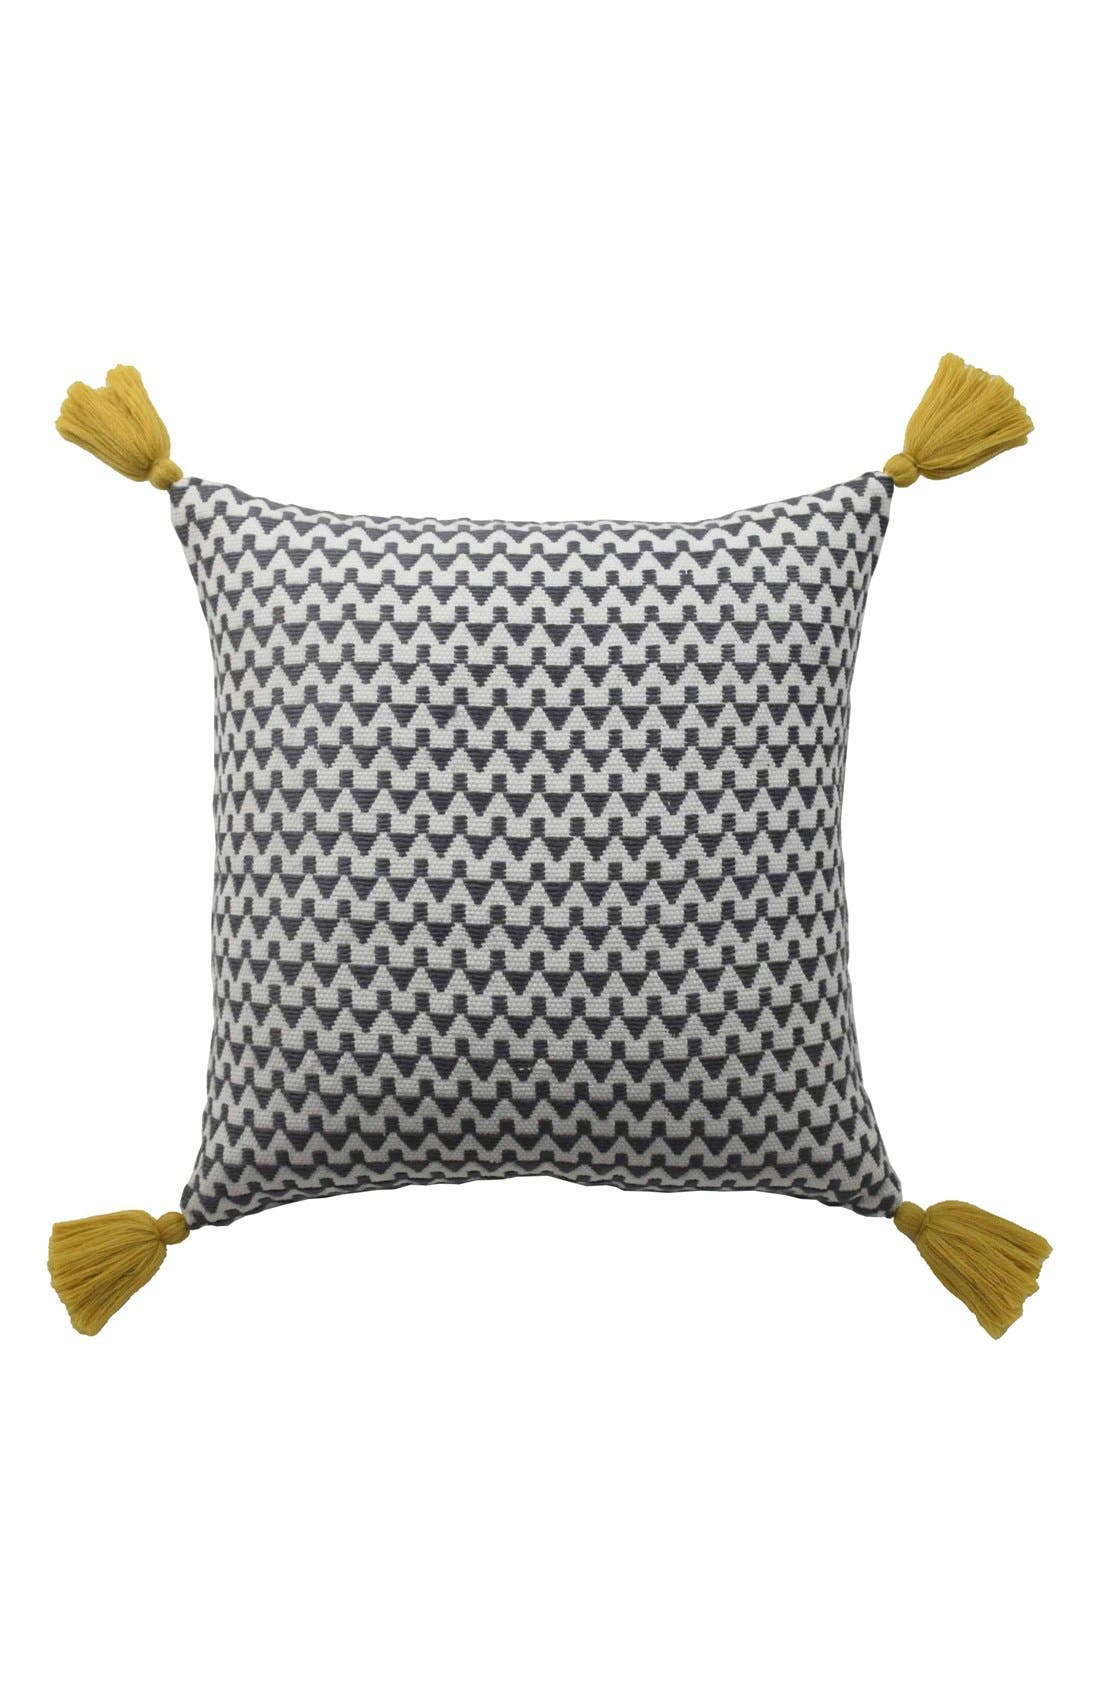 BLISSLIVING HOME 'Winnie' Pillow